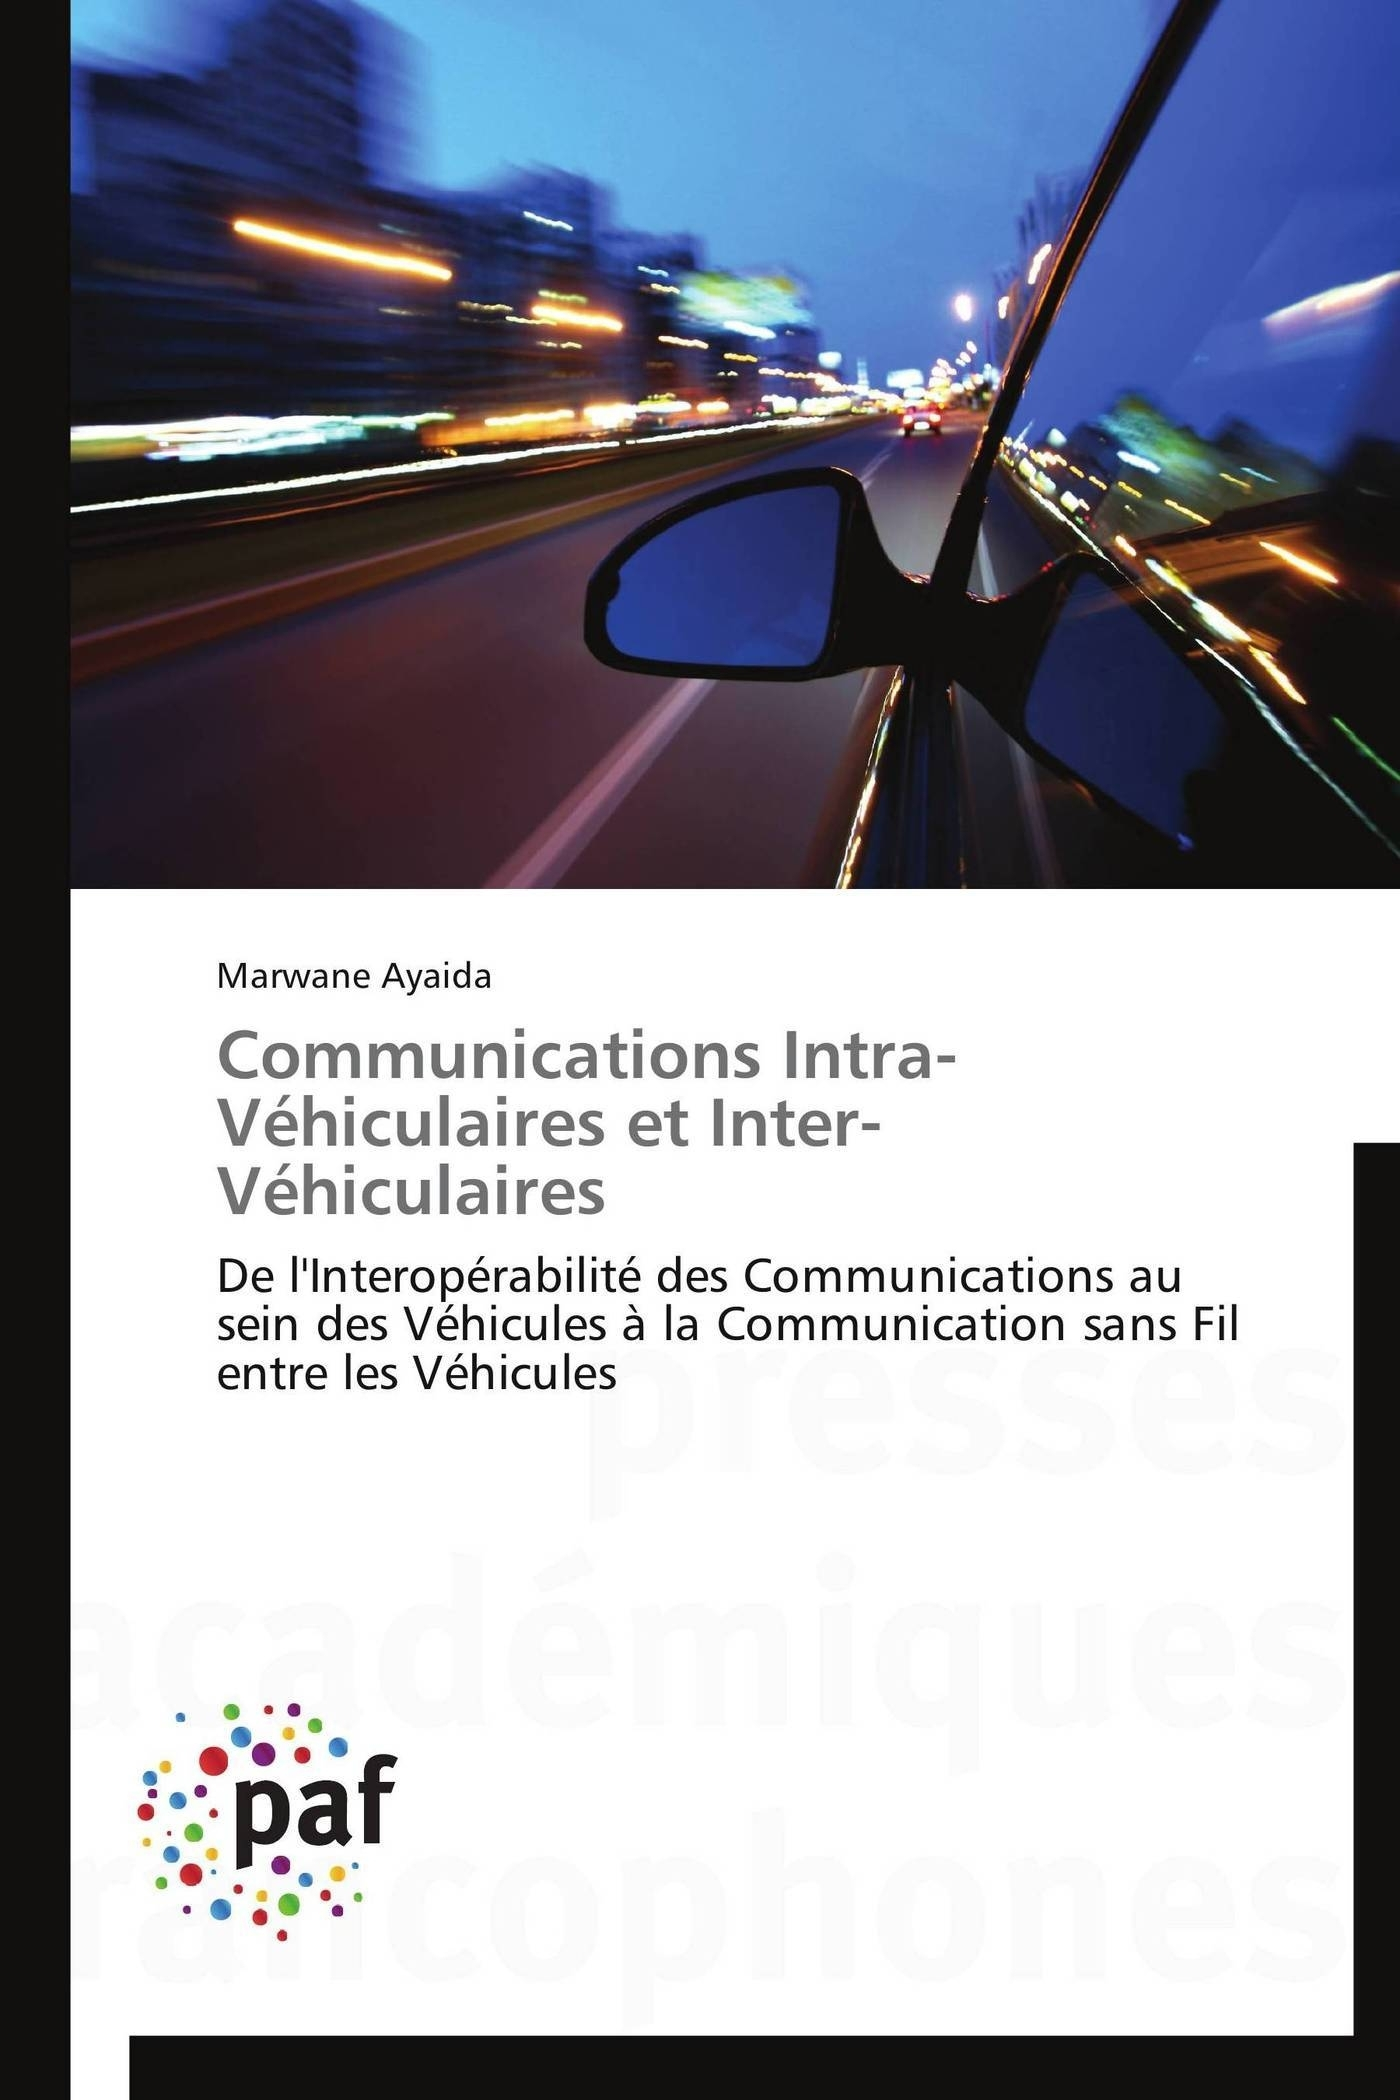 COMMUNICATIONS INTRA-VEHICULAIRES ET INTER-VEHICULAIRES